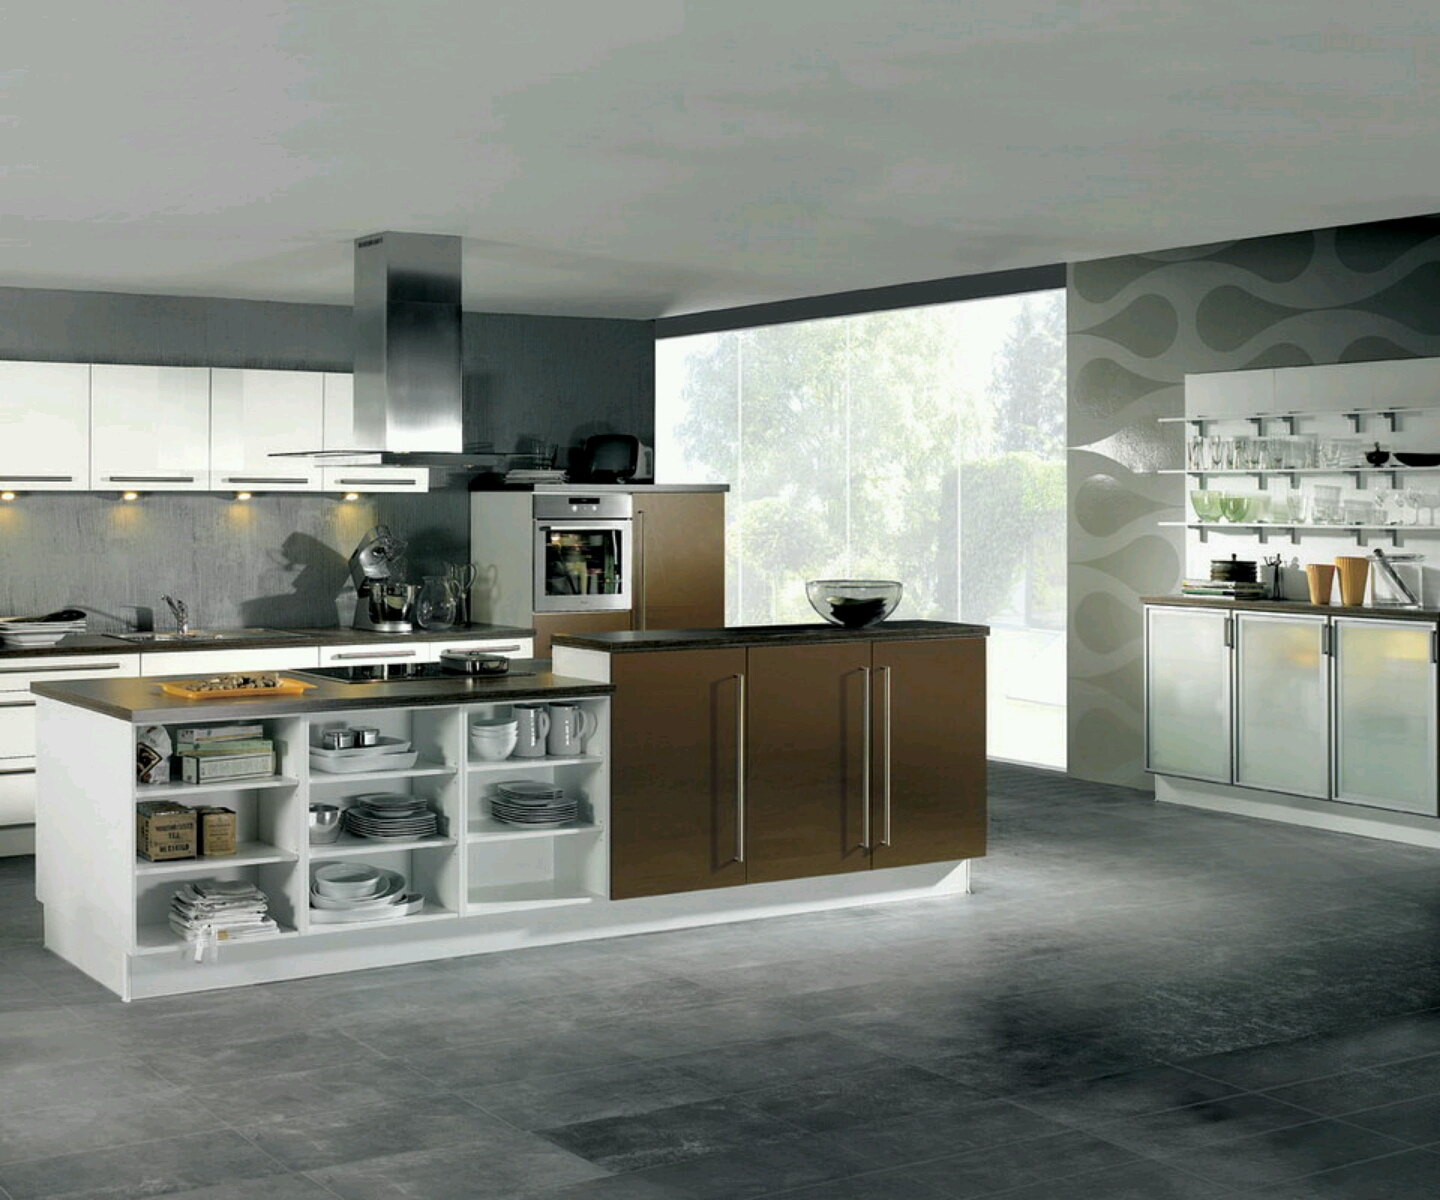 New home designs latest ultra modern kitchen designs ideas for New home kitchen designs